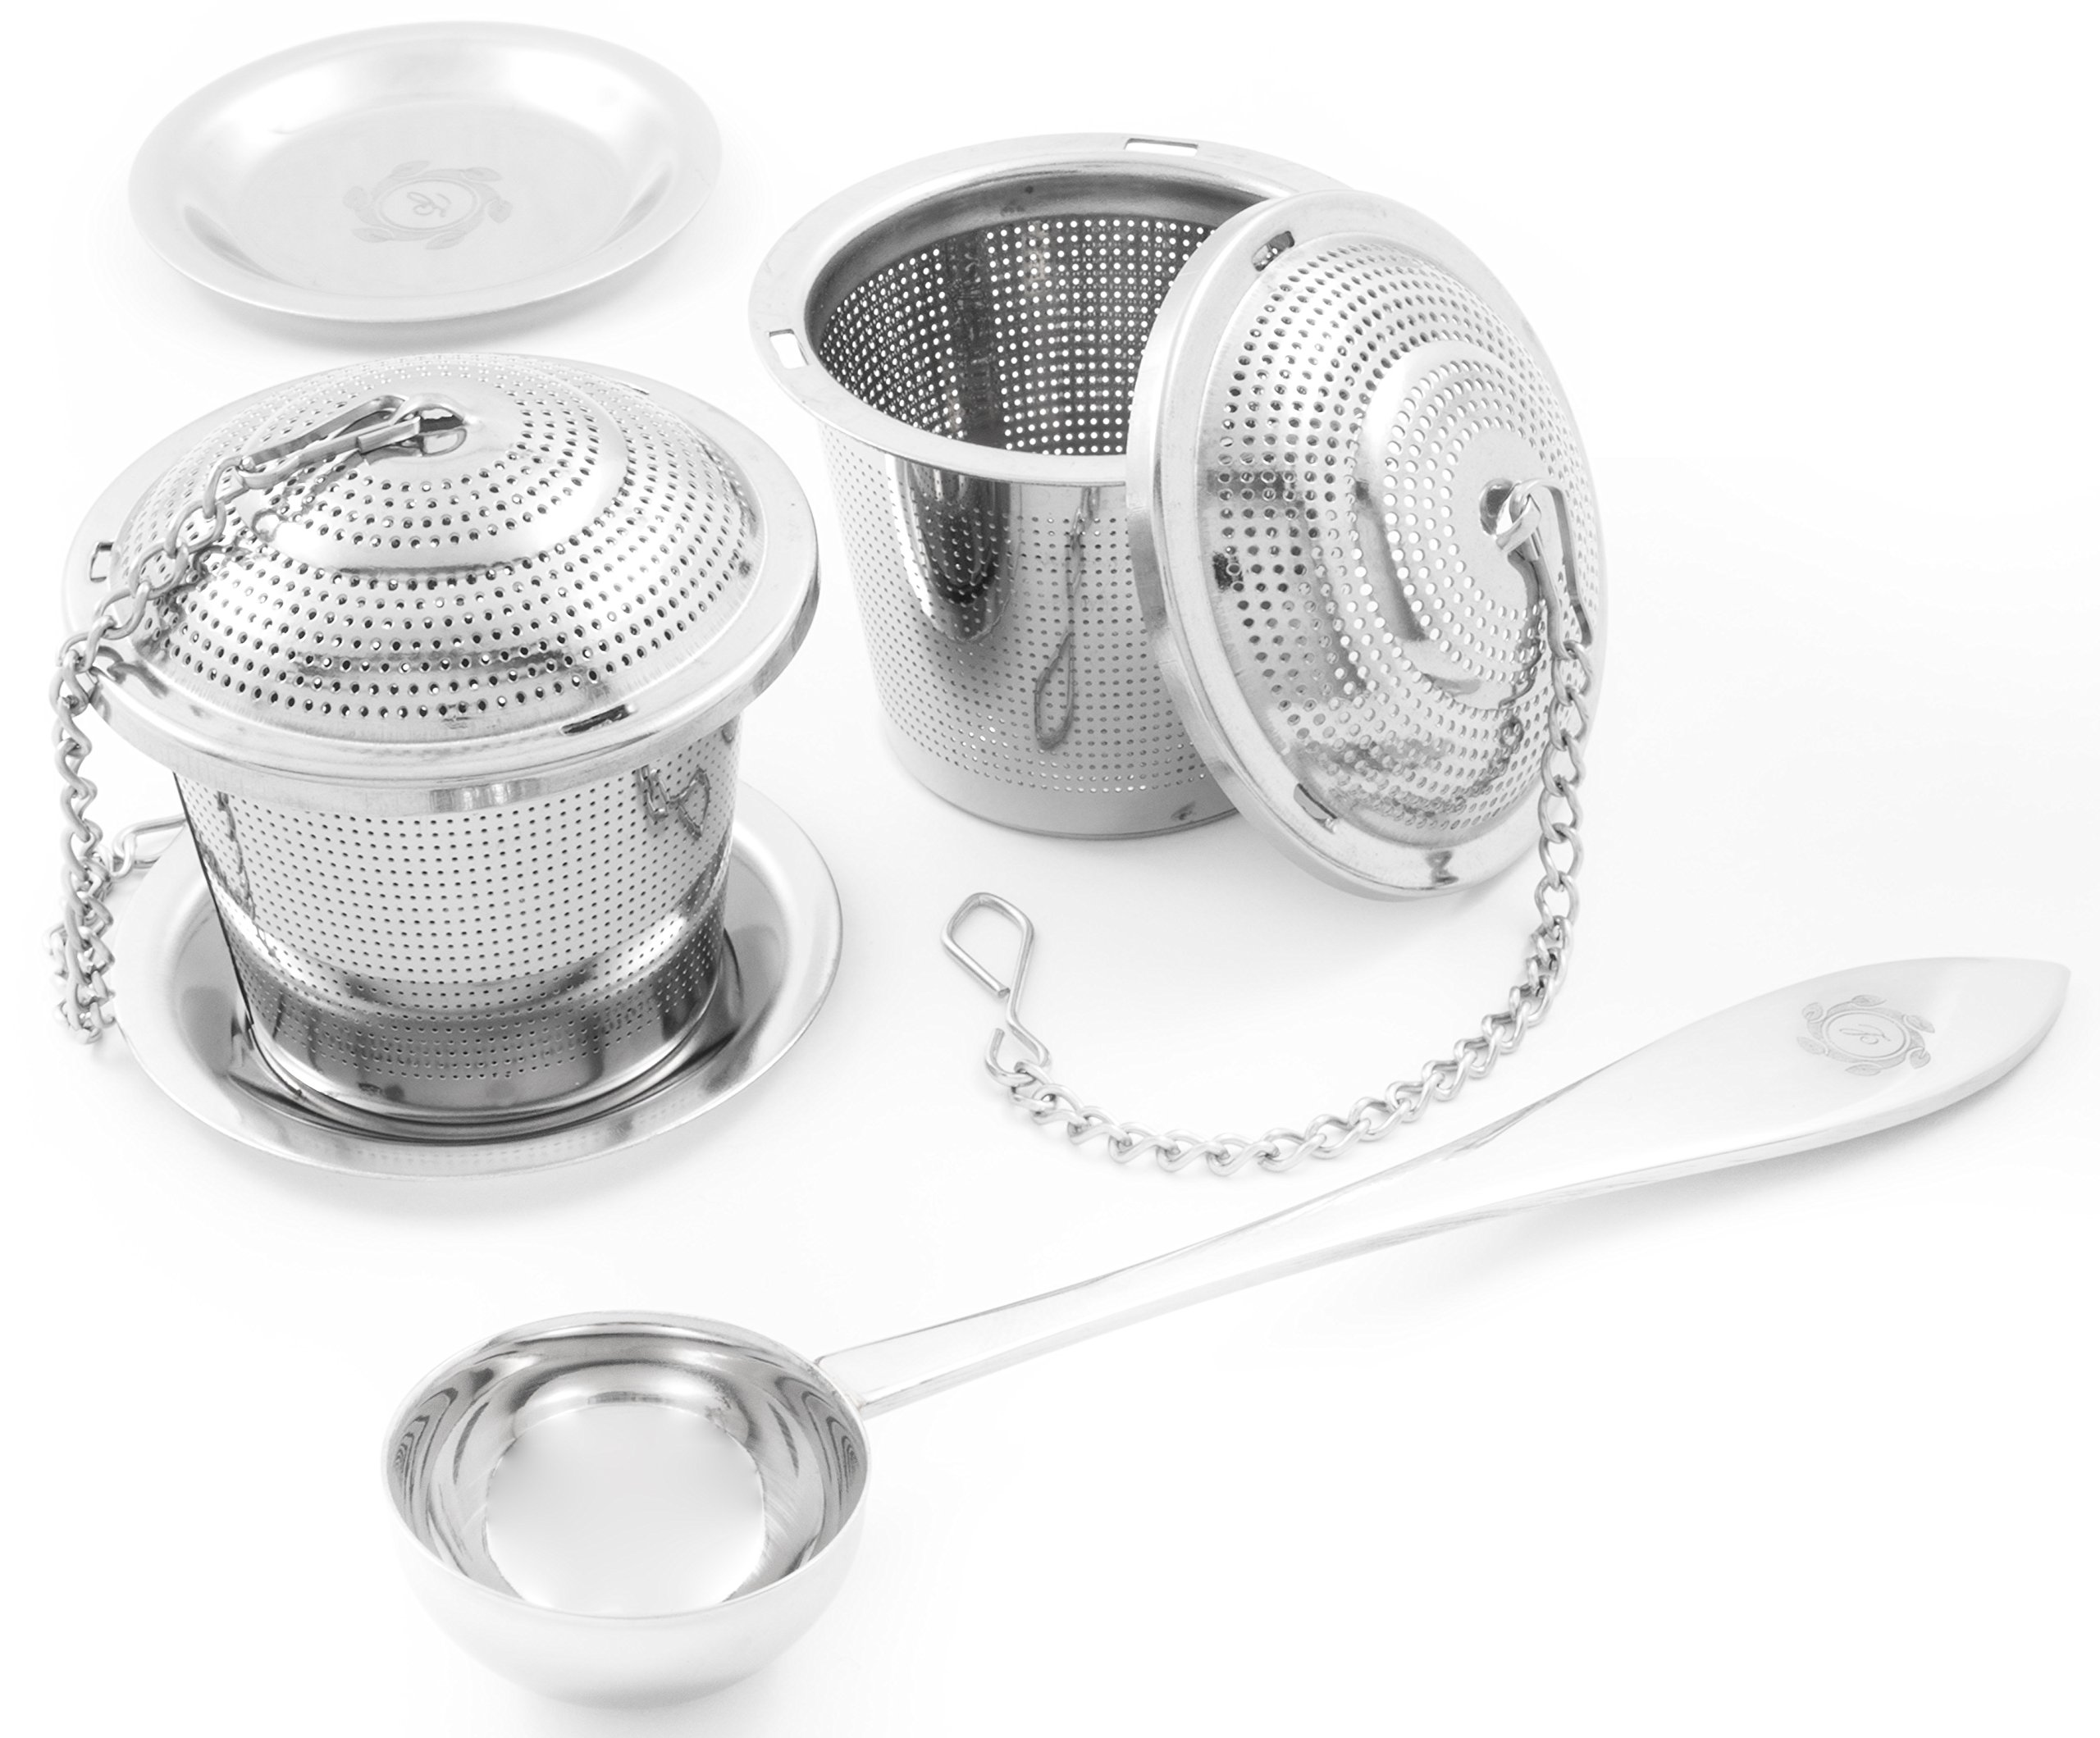 2 Pack Ultra Fine Loose Leaf Tea Ball Infuser Strainer Steeper, Including Tea Scoop, Drip Trays, Long Chain Handle for Easy Brewing All Fine Teas, Spices and Seasonings. by Luvly Tea